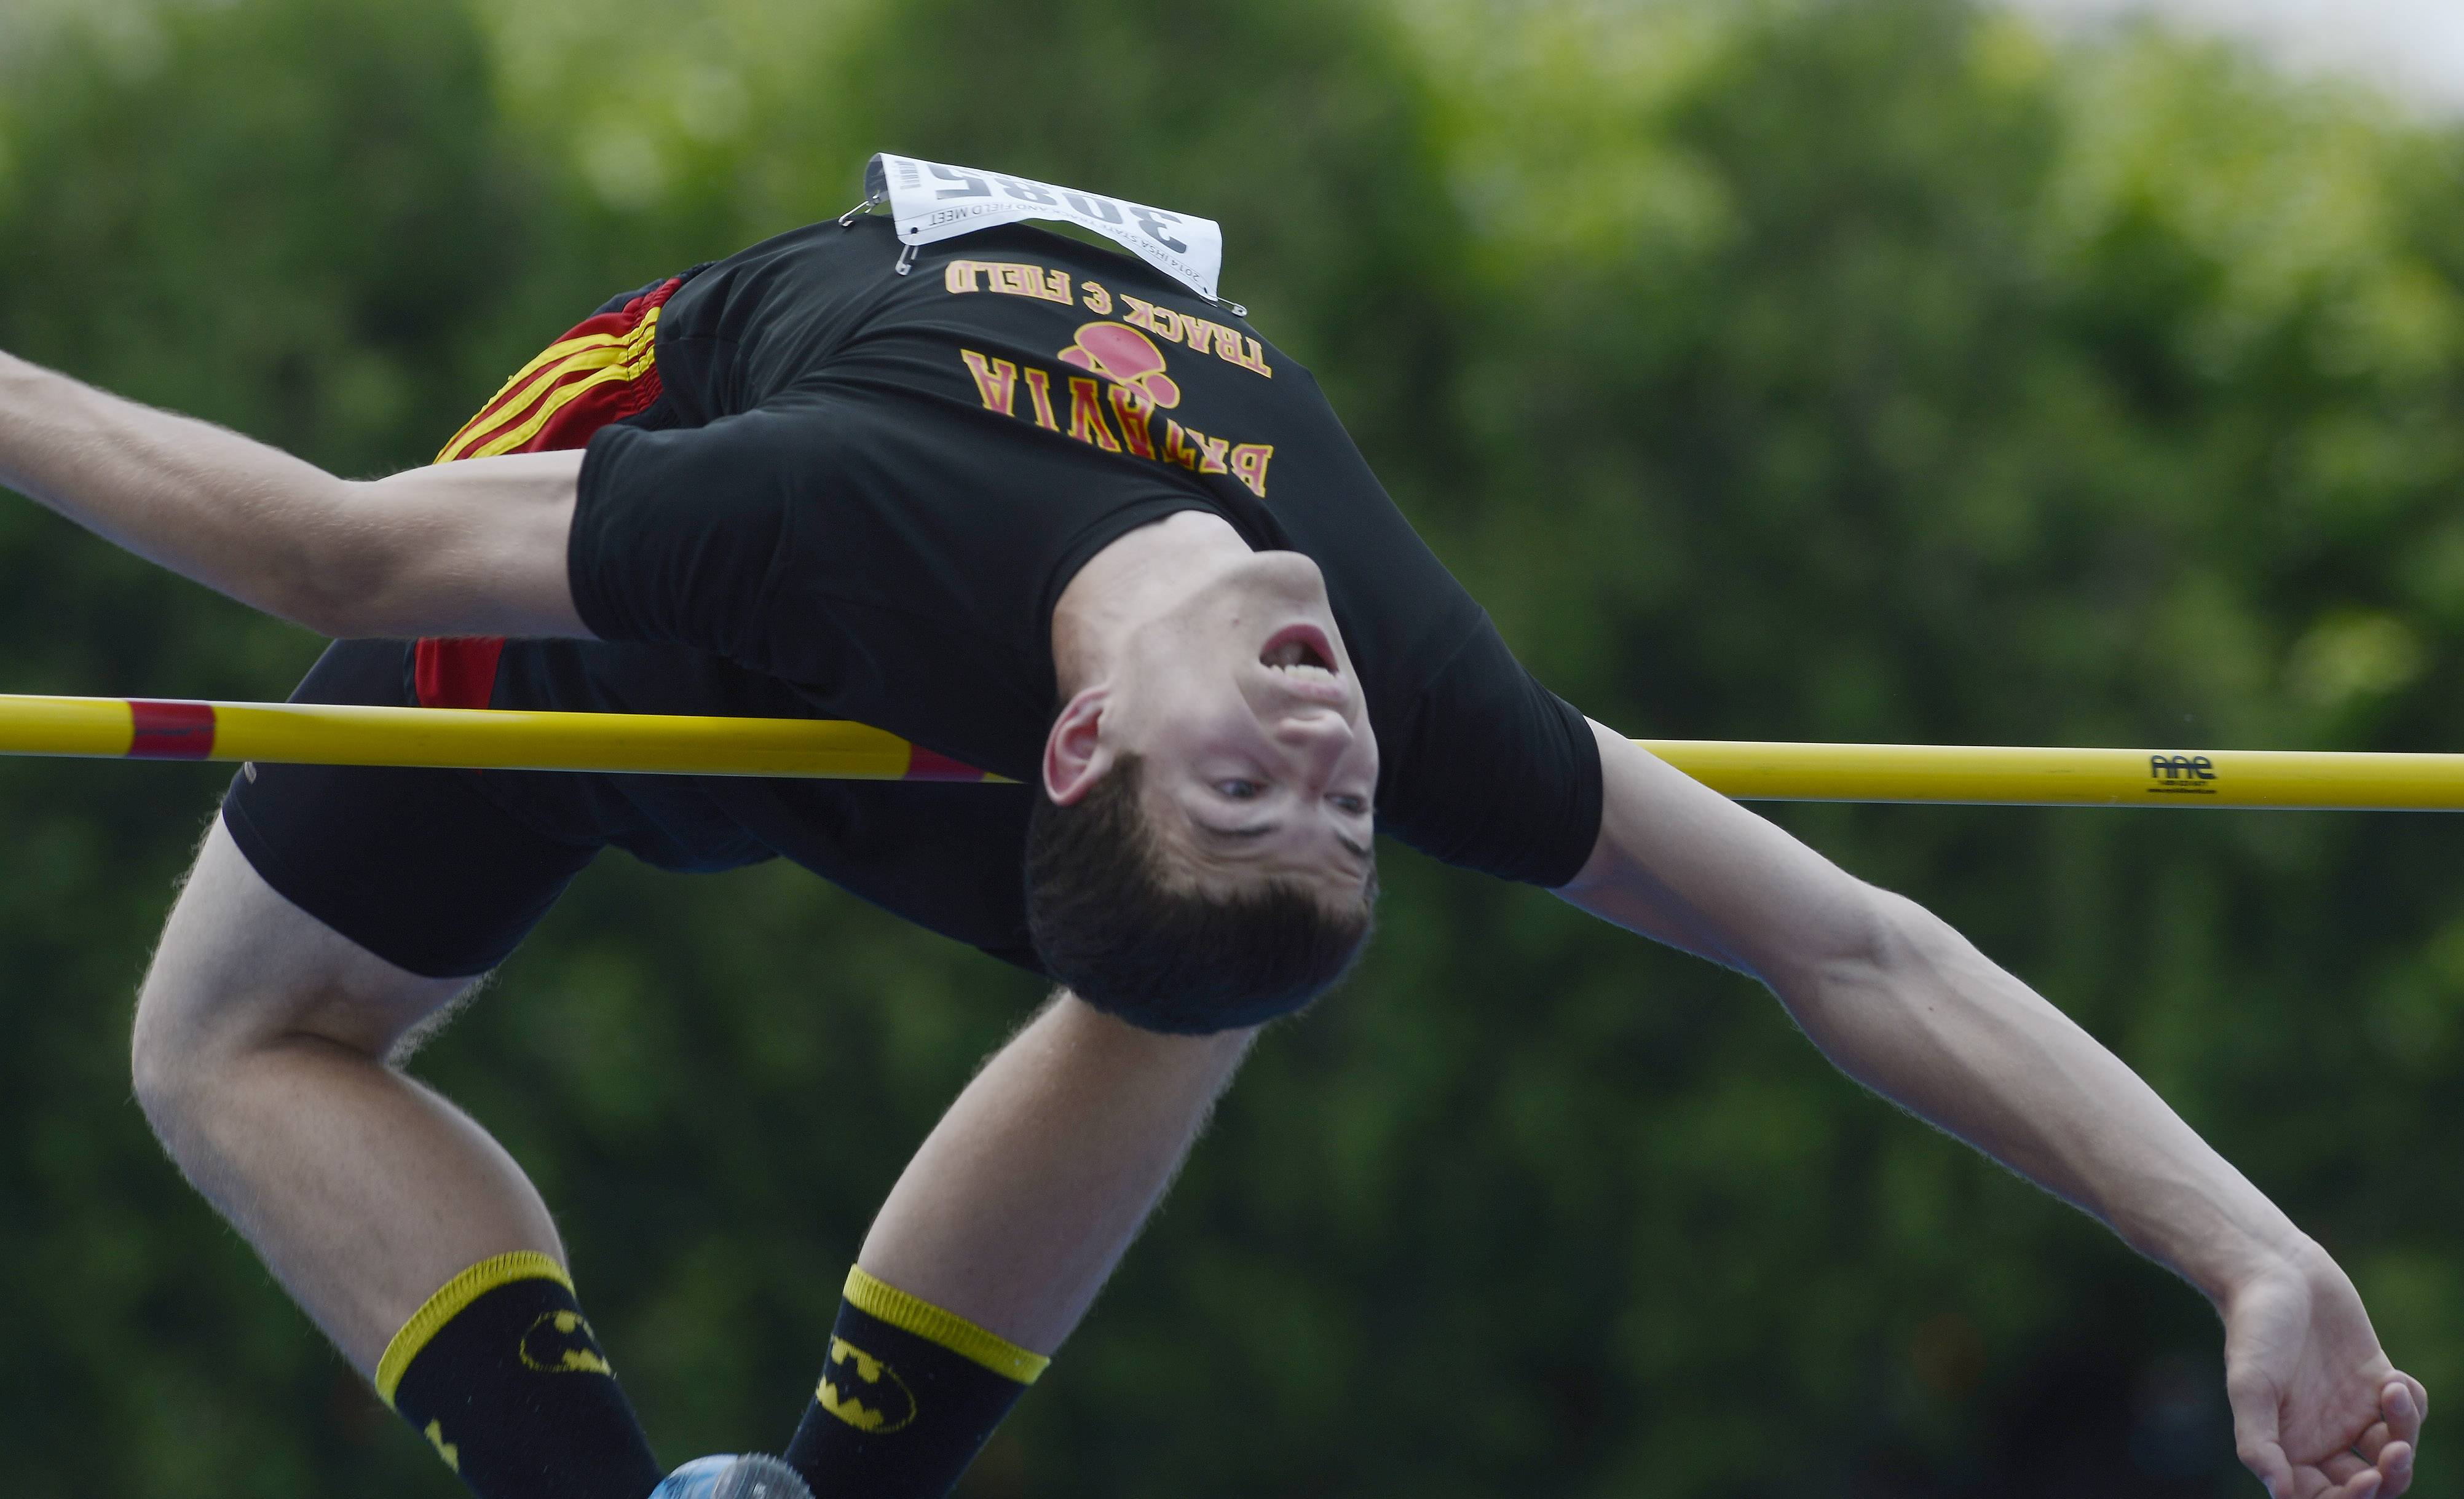 Batavia's Mark Rudelich clears the high jump bar at 6 feet, 4 inches during the Class 3A boys track and field state preliminaries in Charleston on Friday.